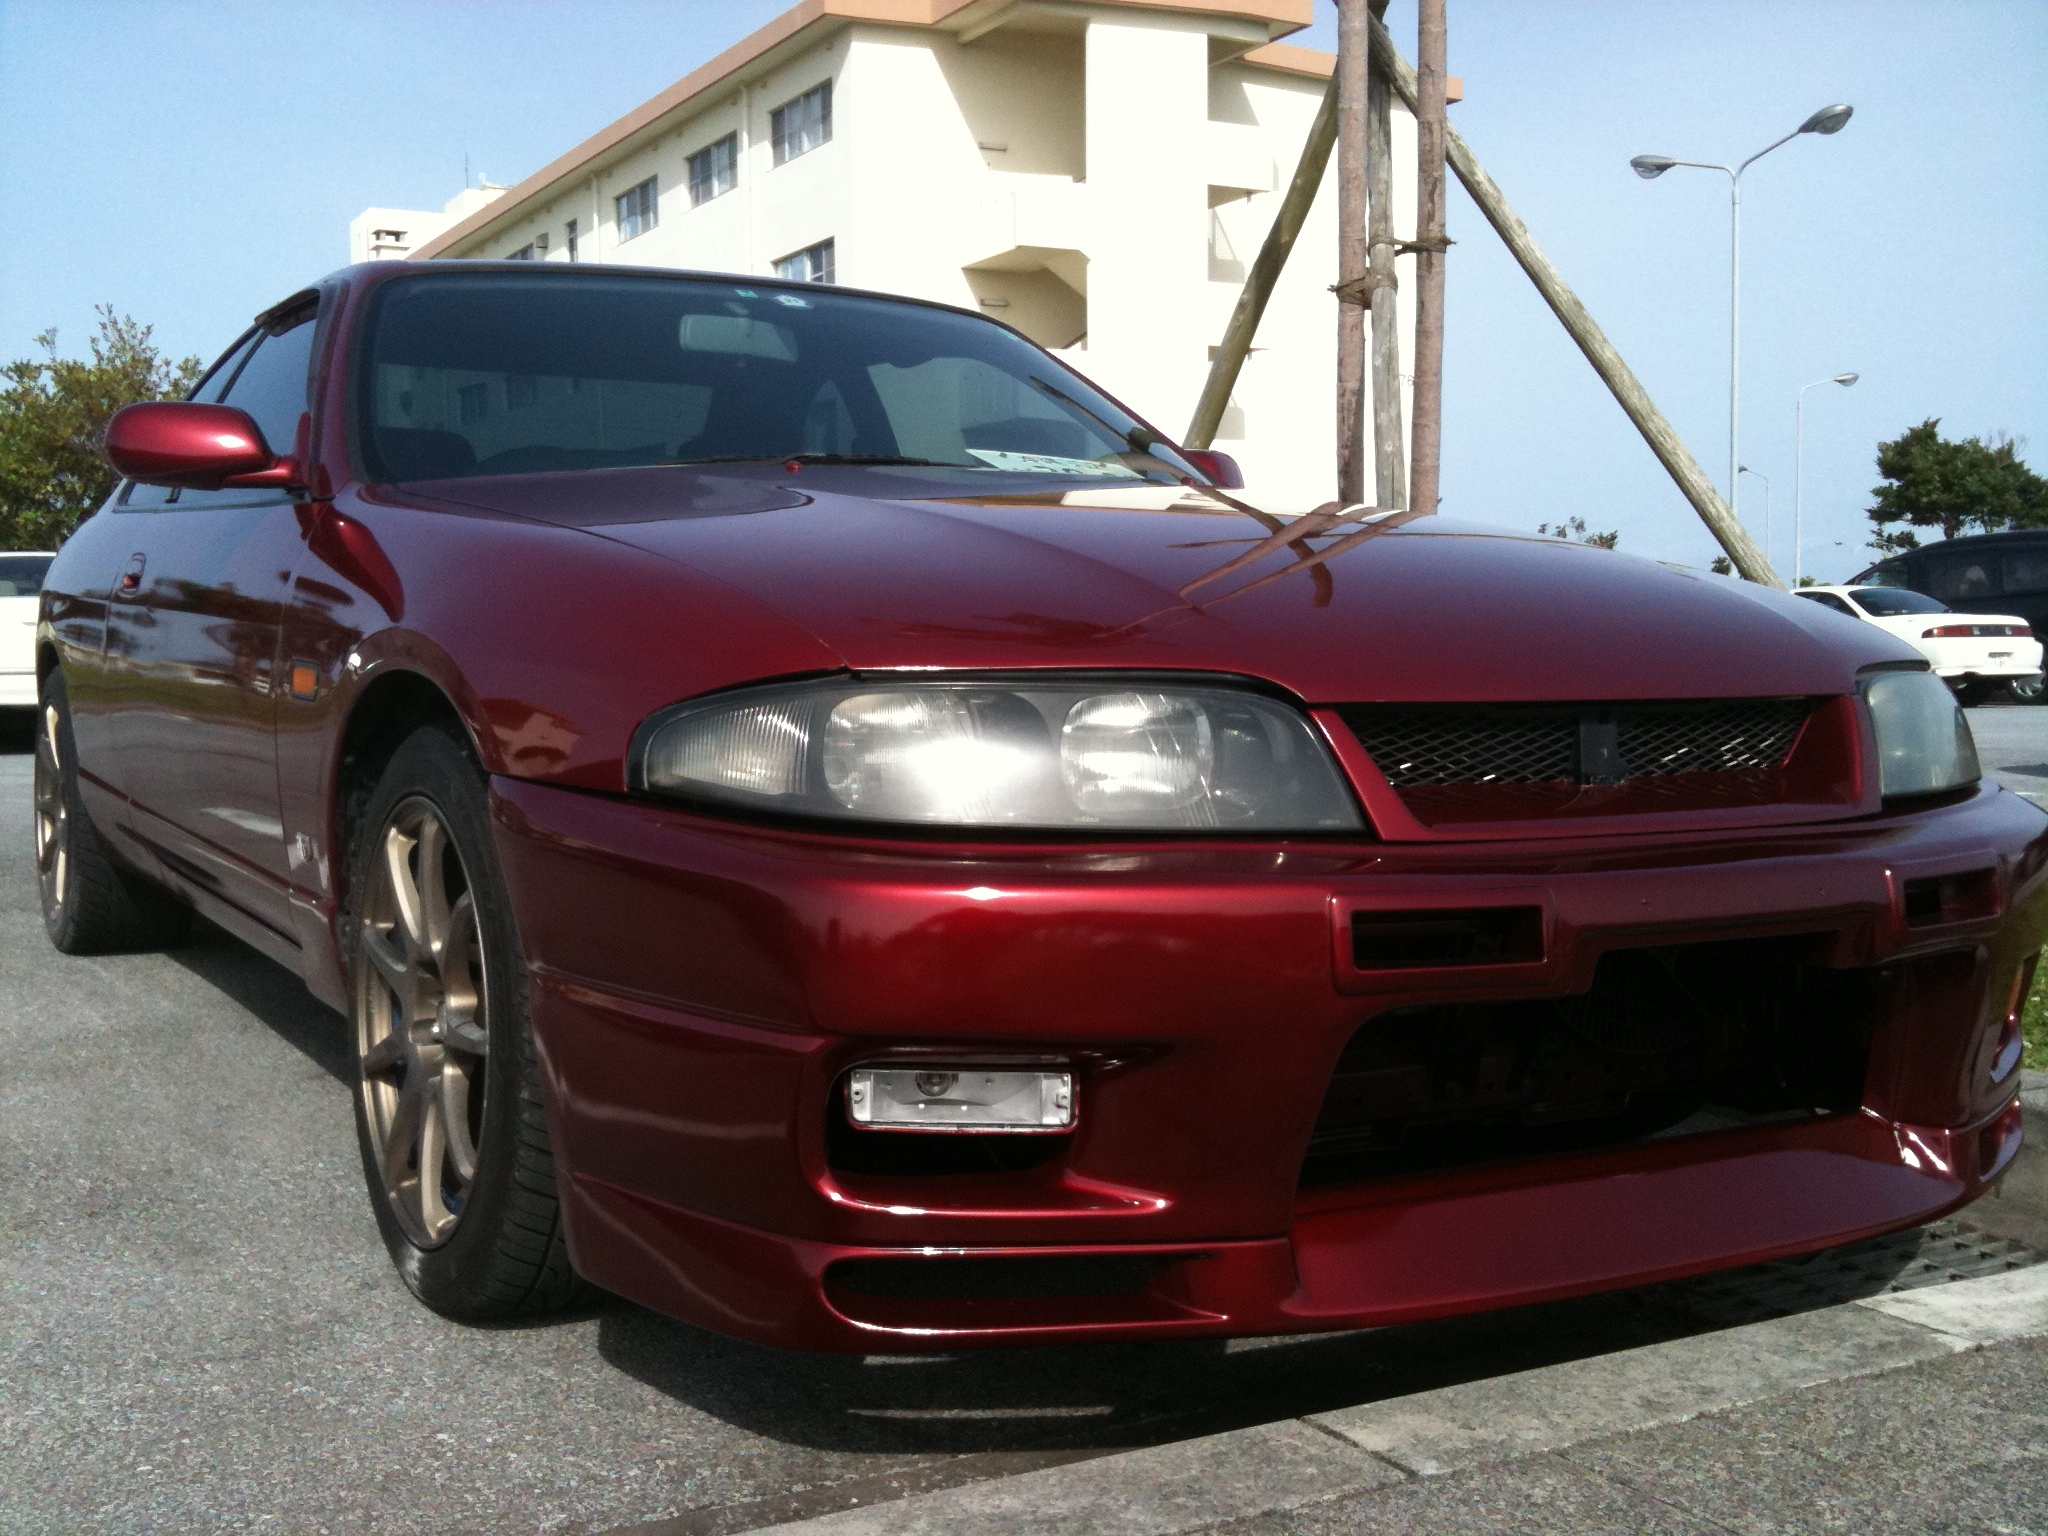 Automotib 1995 Nissan Skyline 14179317